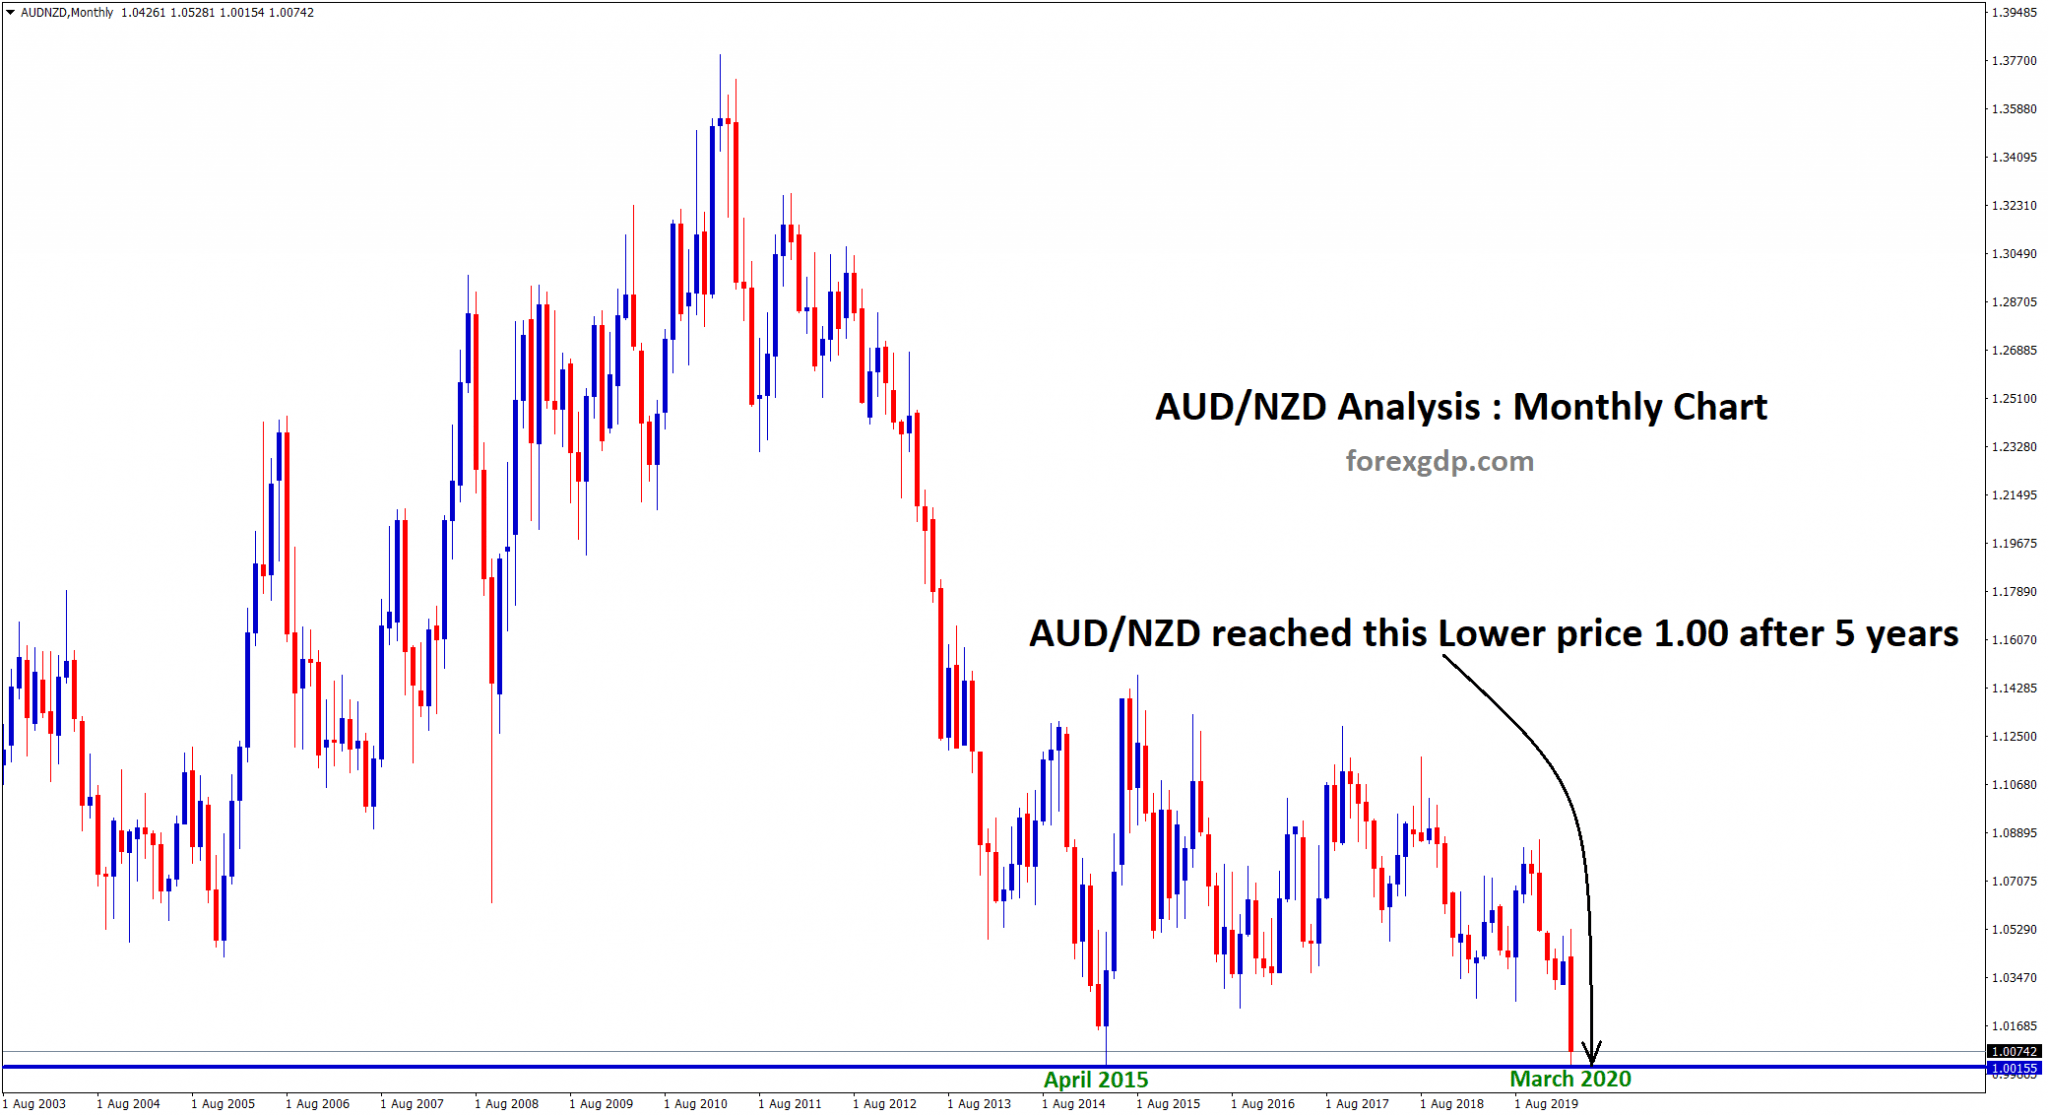 AUD NZD hits 1.00 after 5 years in March 2020